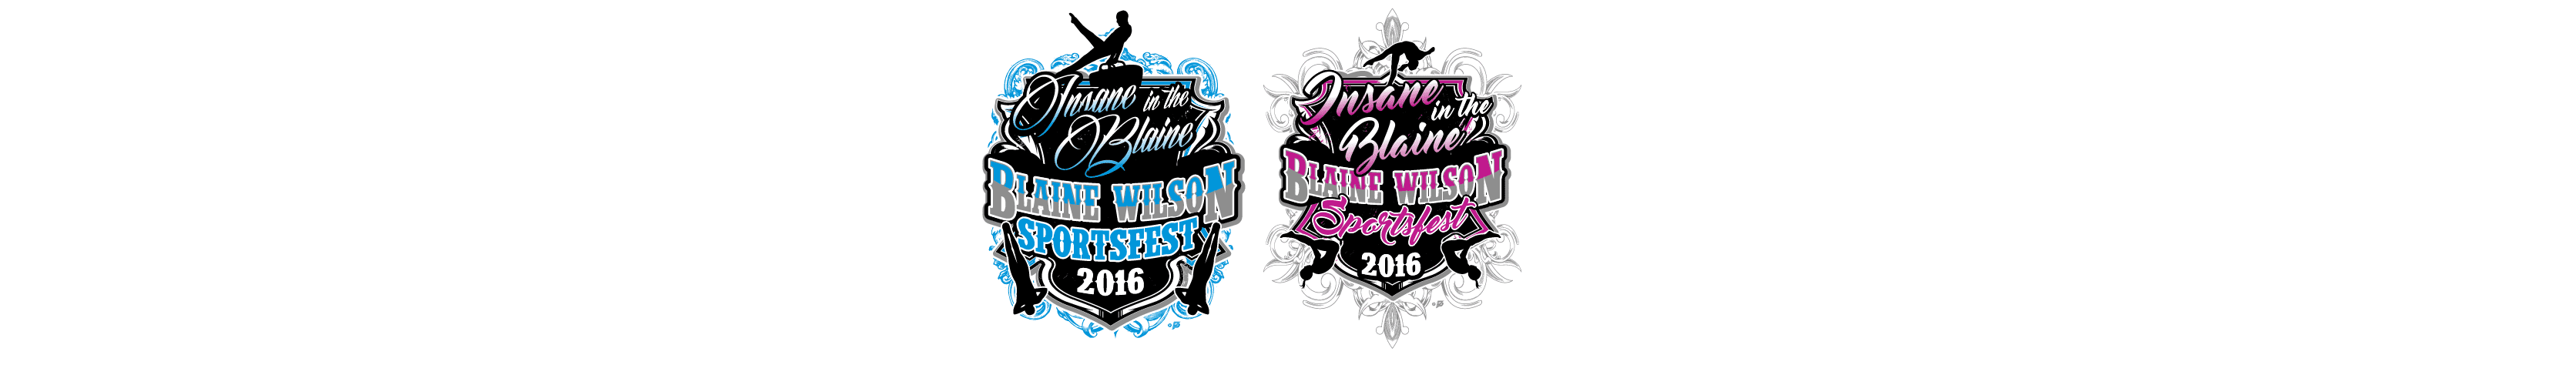 VECTOR LOGO DESIGN FOR PRINT BLAIN WILLSON FEMALE AND MALE GYMNASTICS EVENT